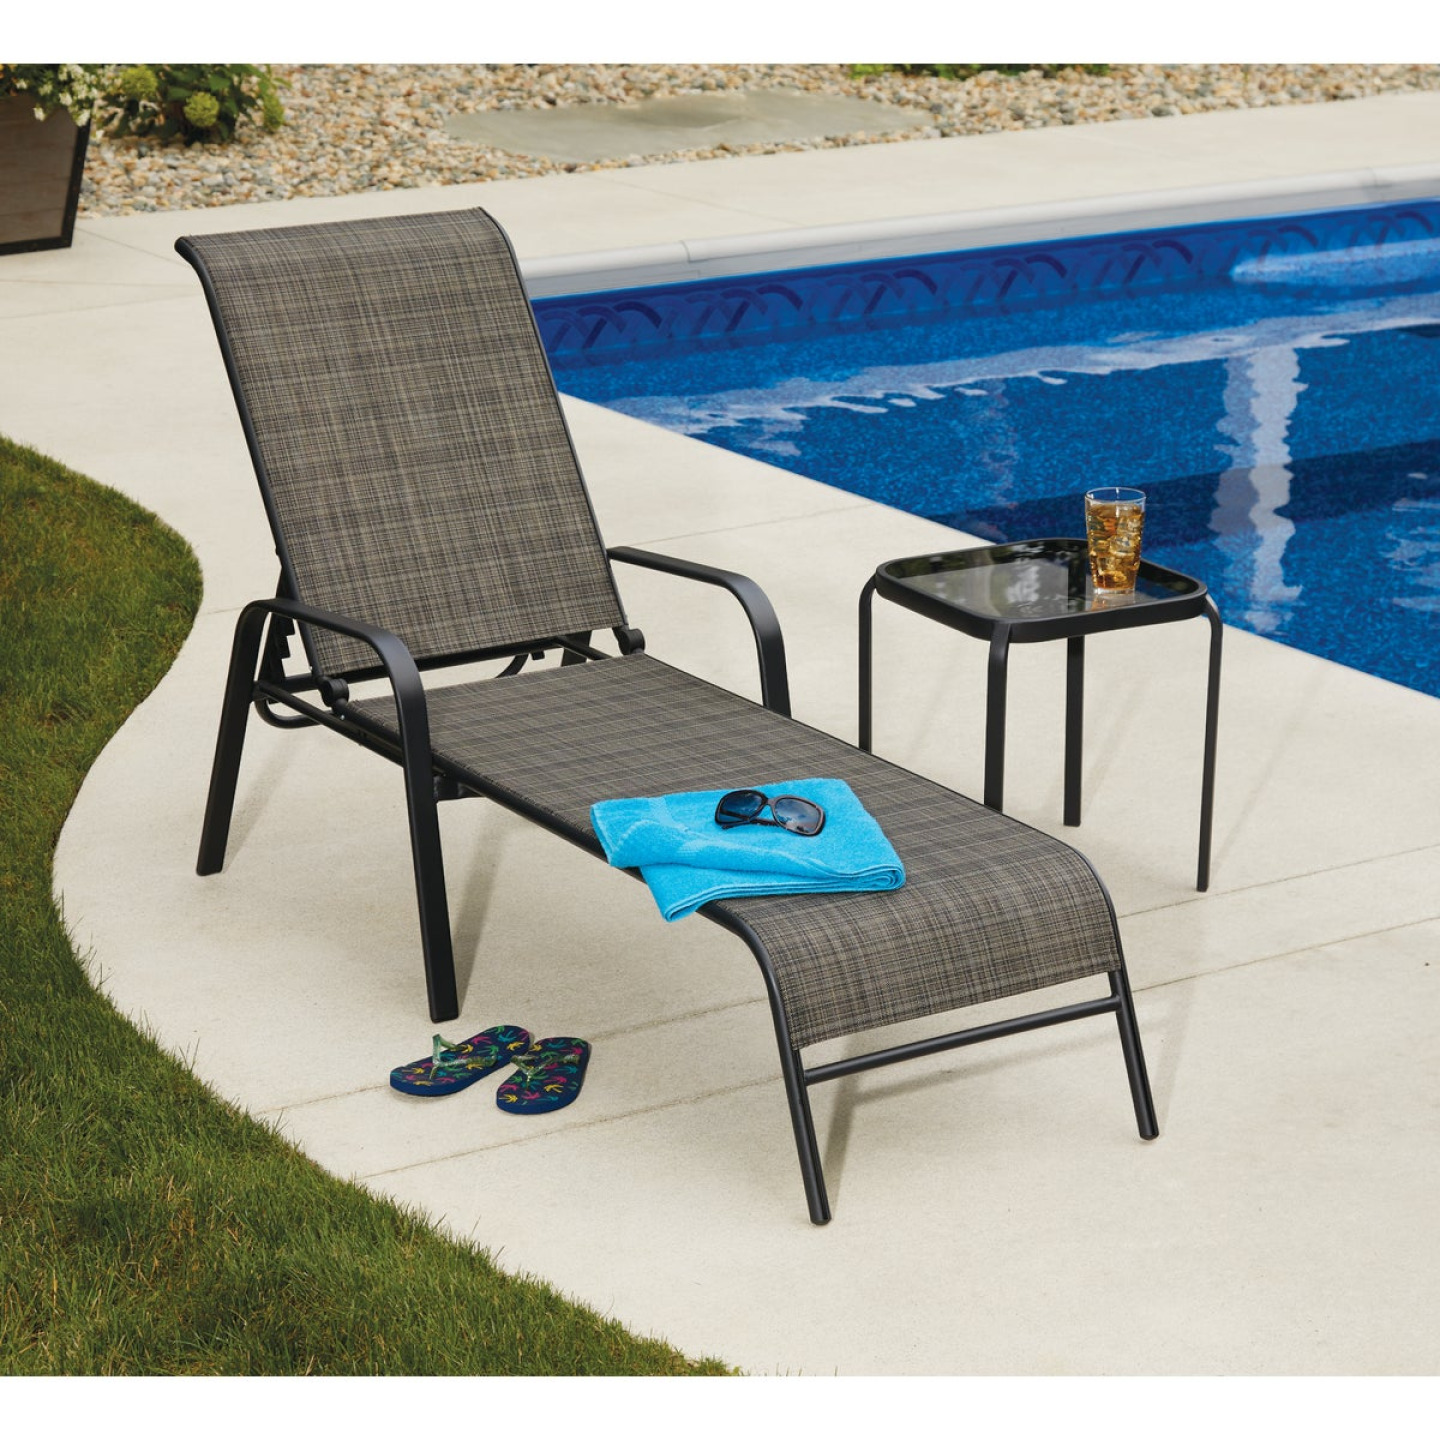 Outdoor Expressions Windsor Chaise Lounge Image 2